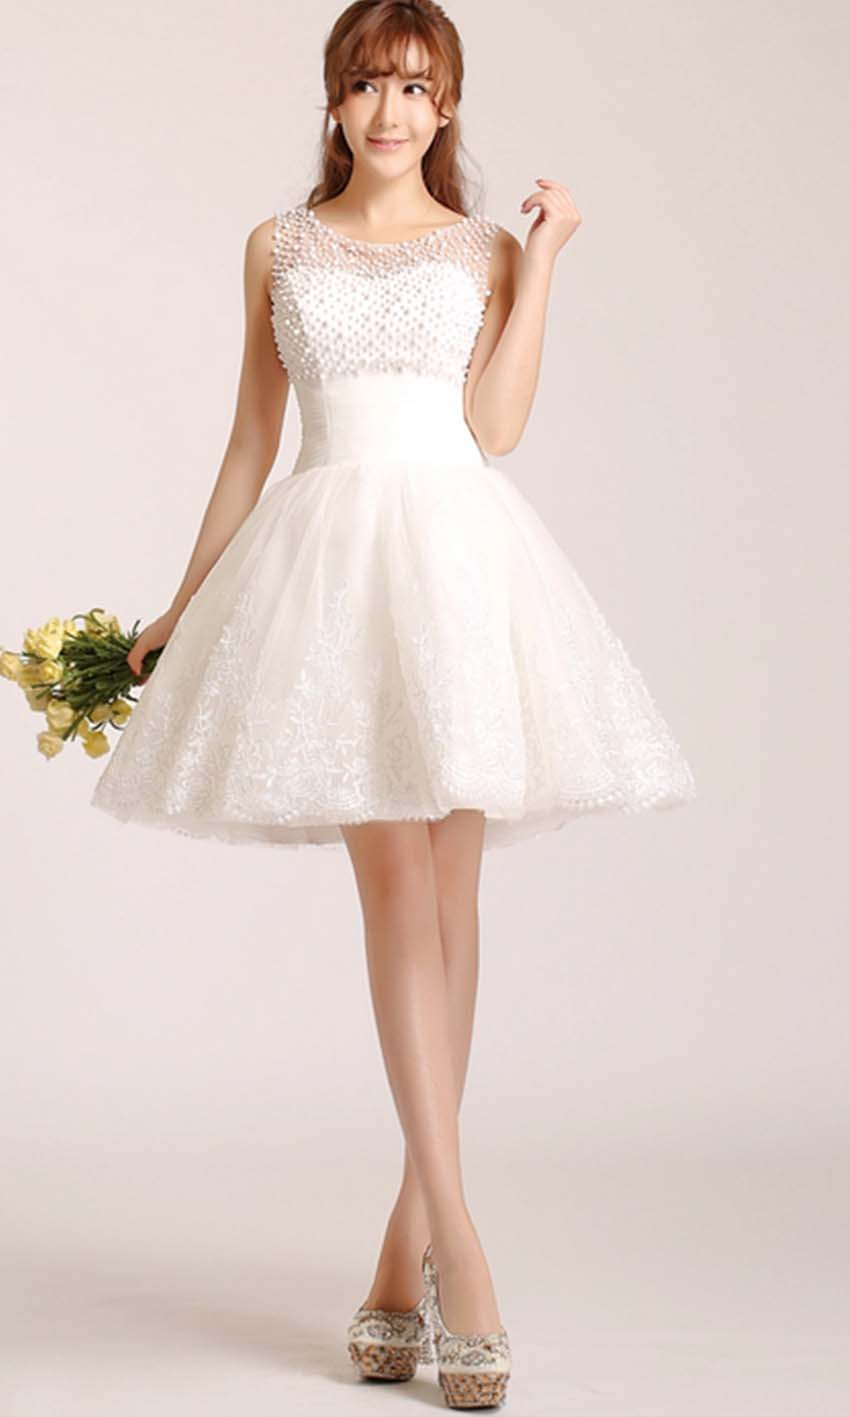 Inexpensive white evening dresses - Dress collection 2018